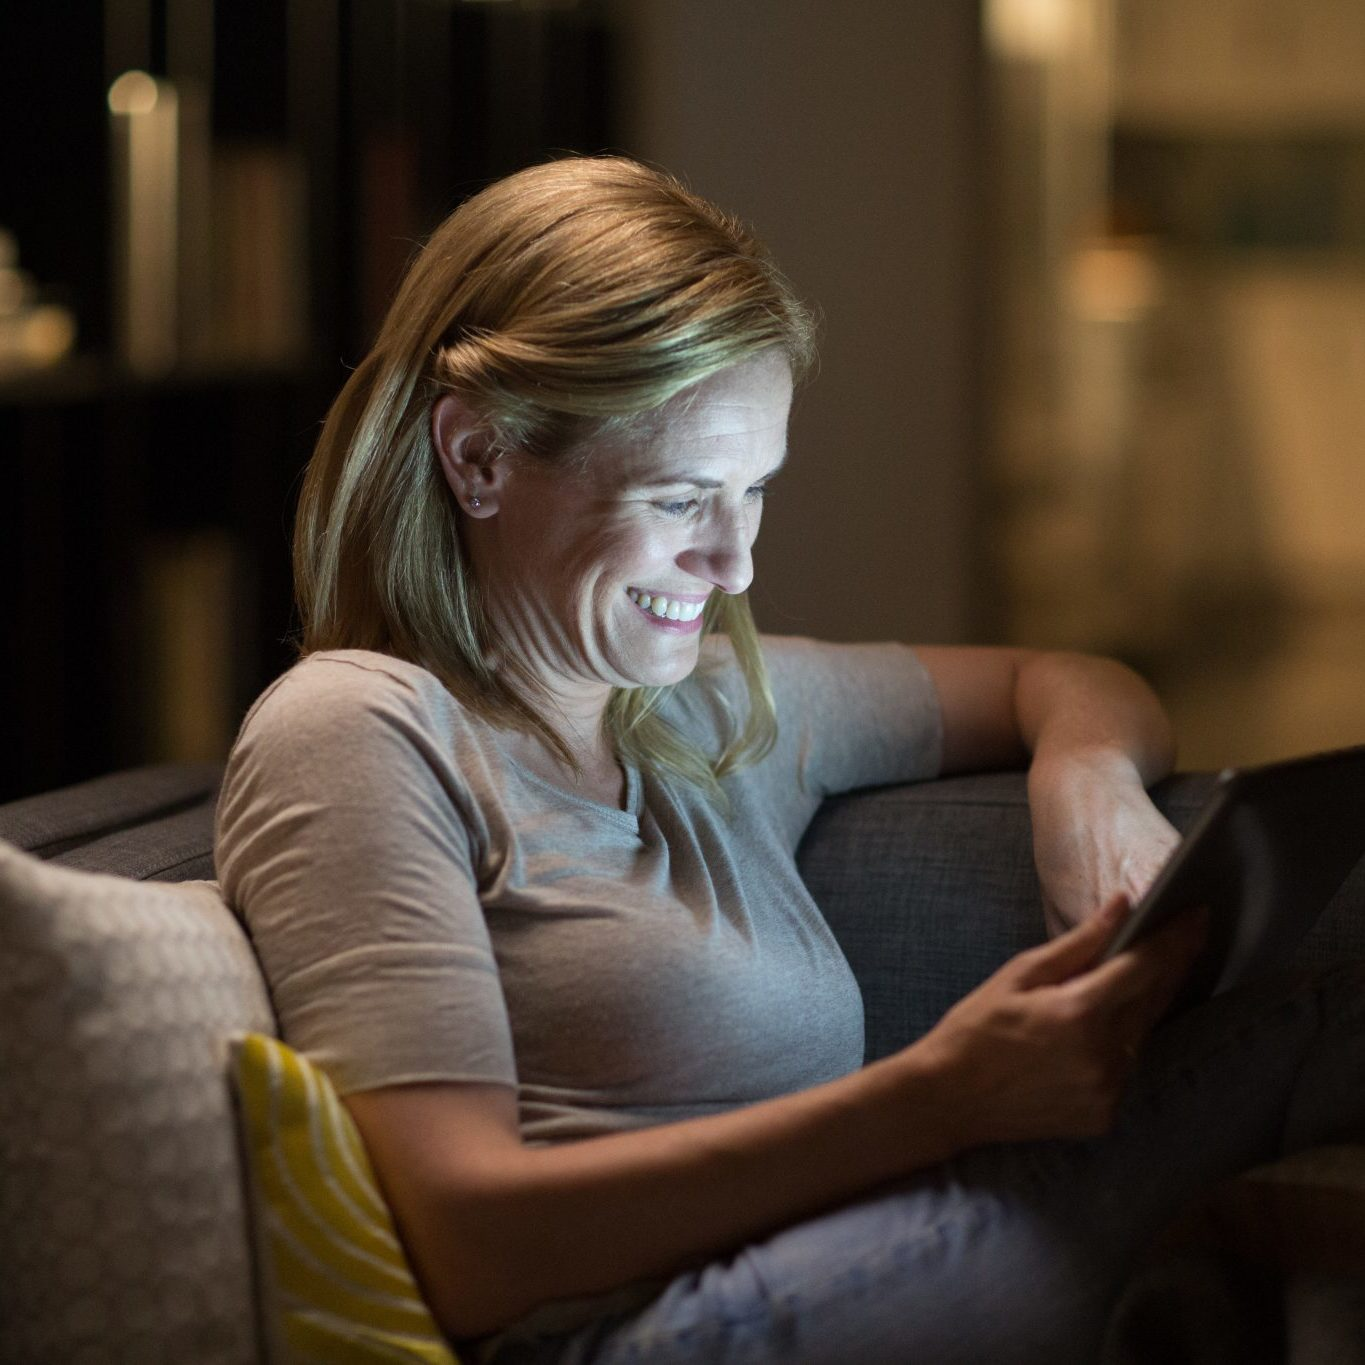 Woman sitting on couch looking at a tablet device